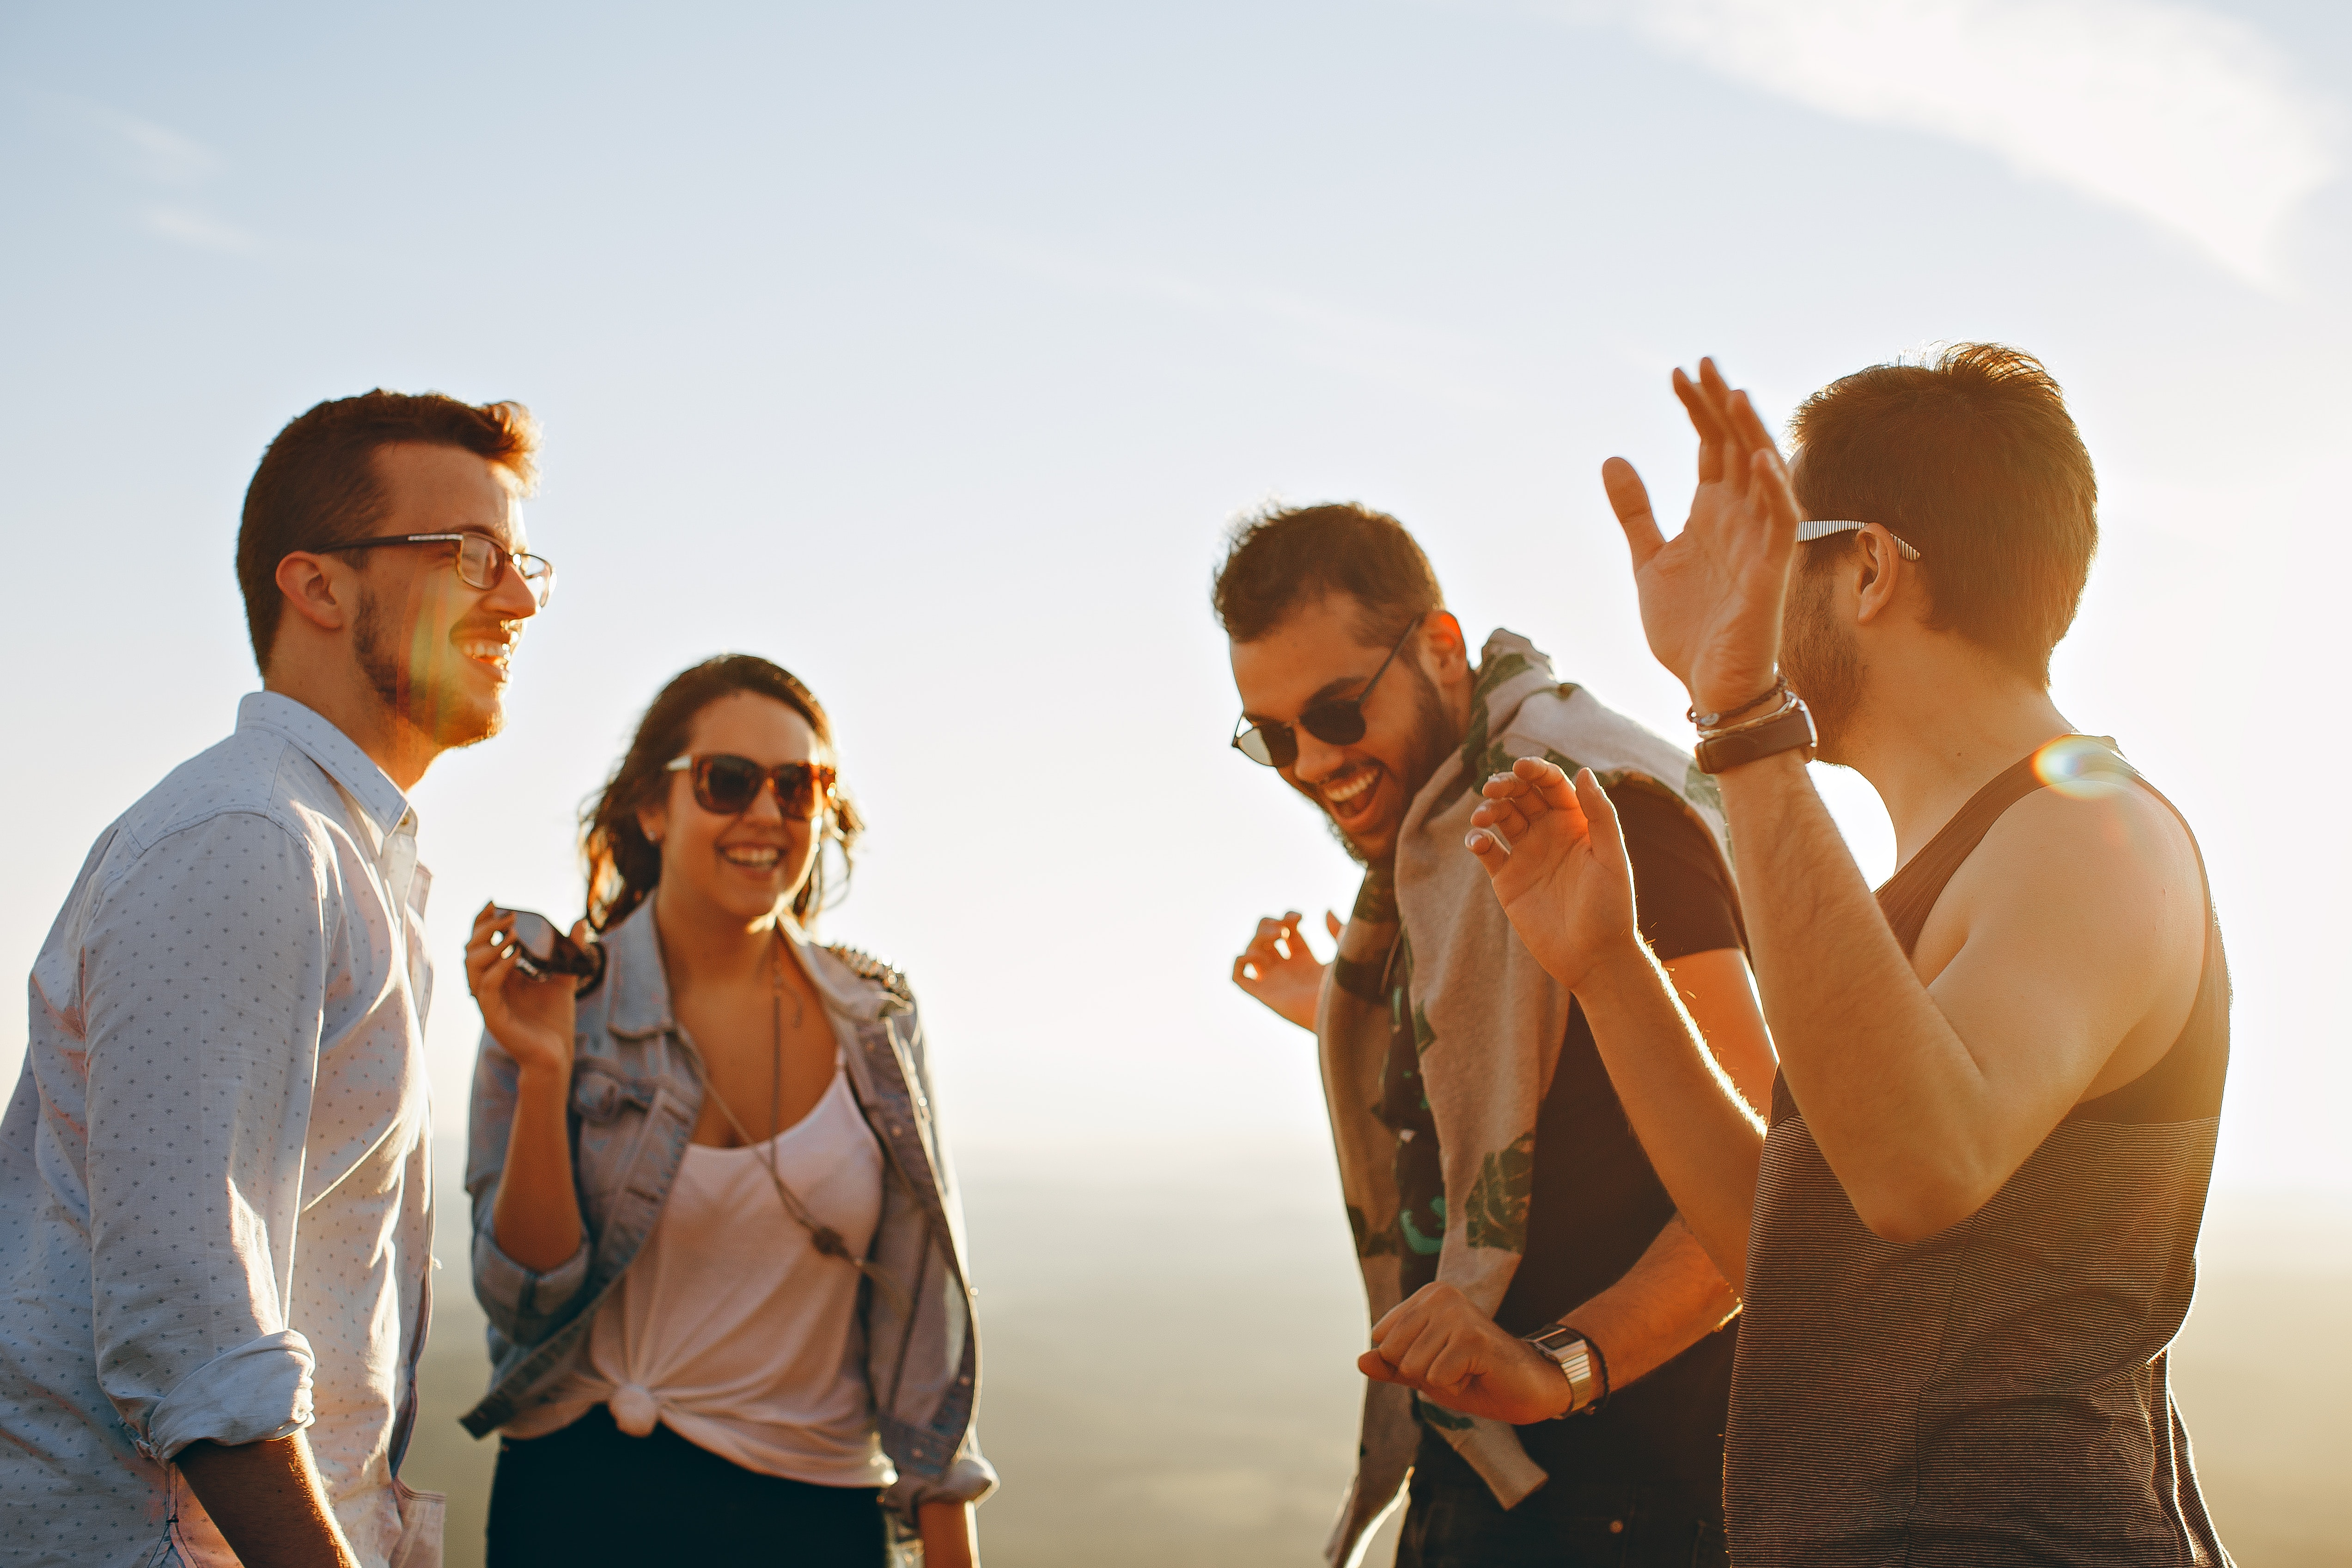 Group of people having fun together under the sun photo